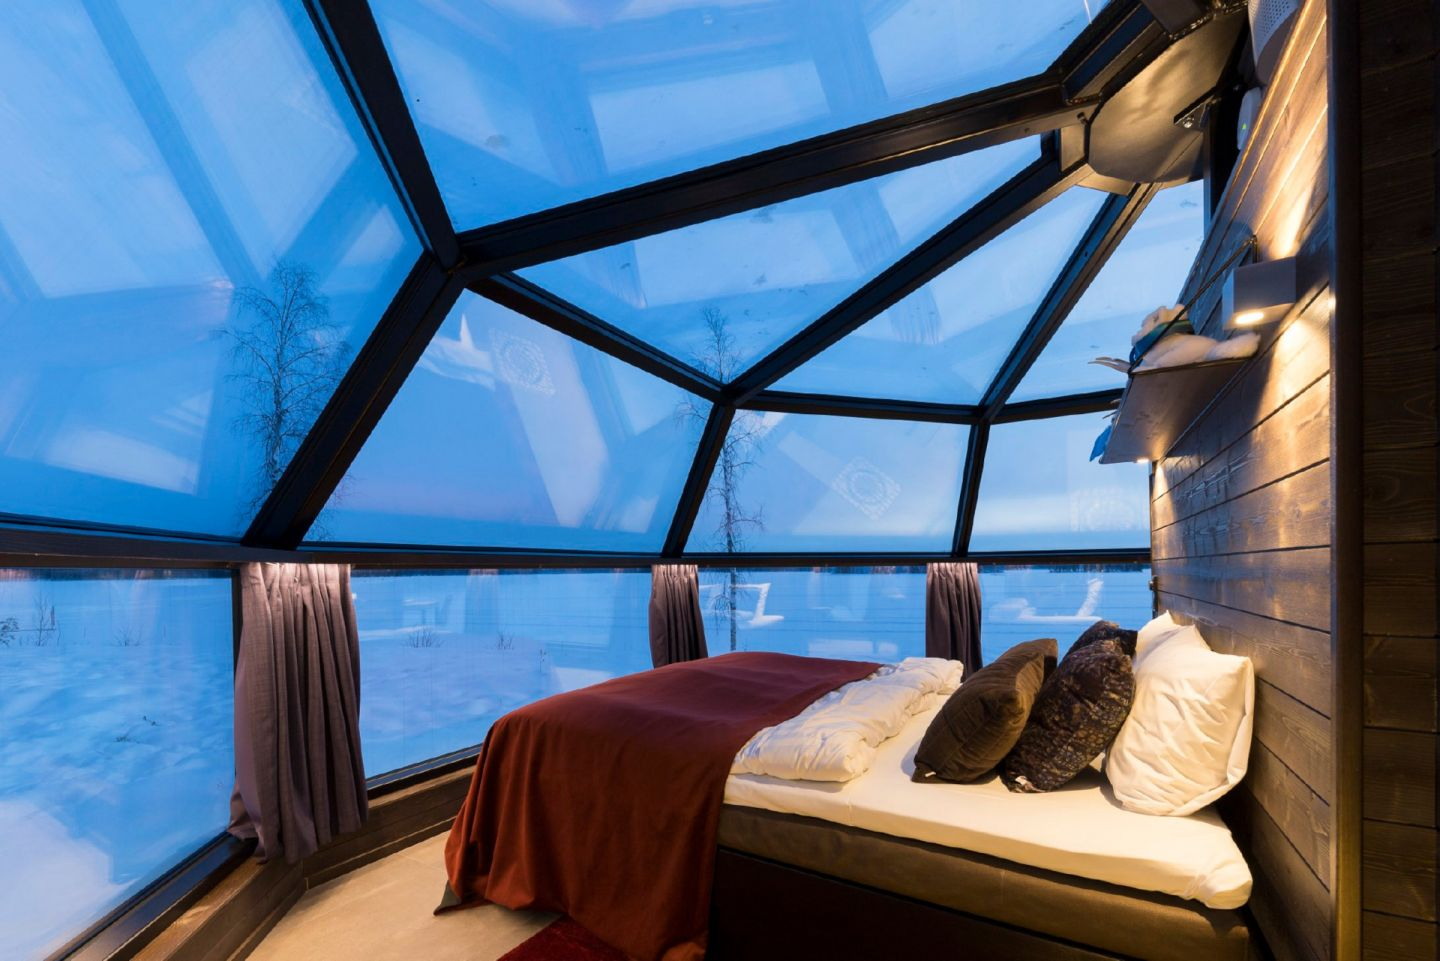 An evening view from Arctic Fox Igloos, a special winter accommodation in Finnish Lapland